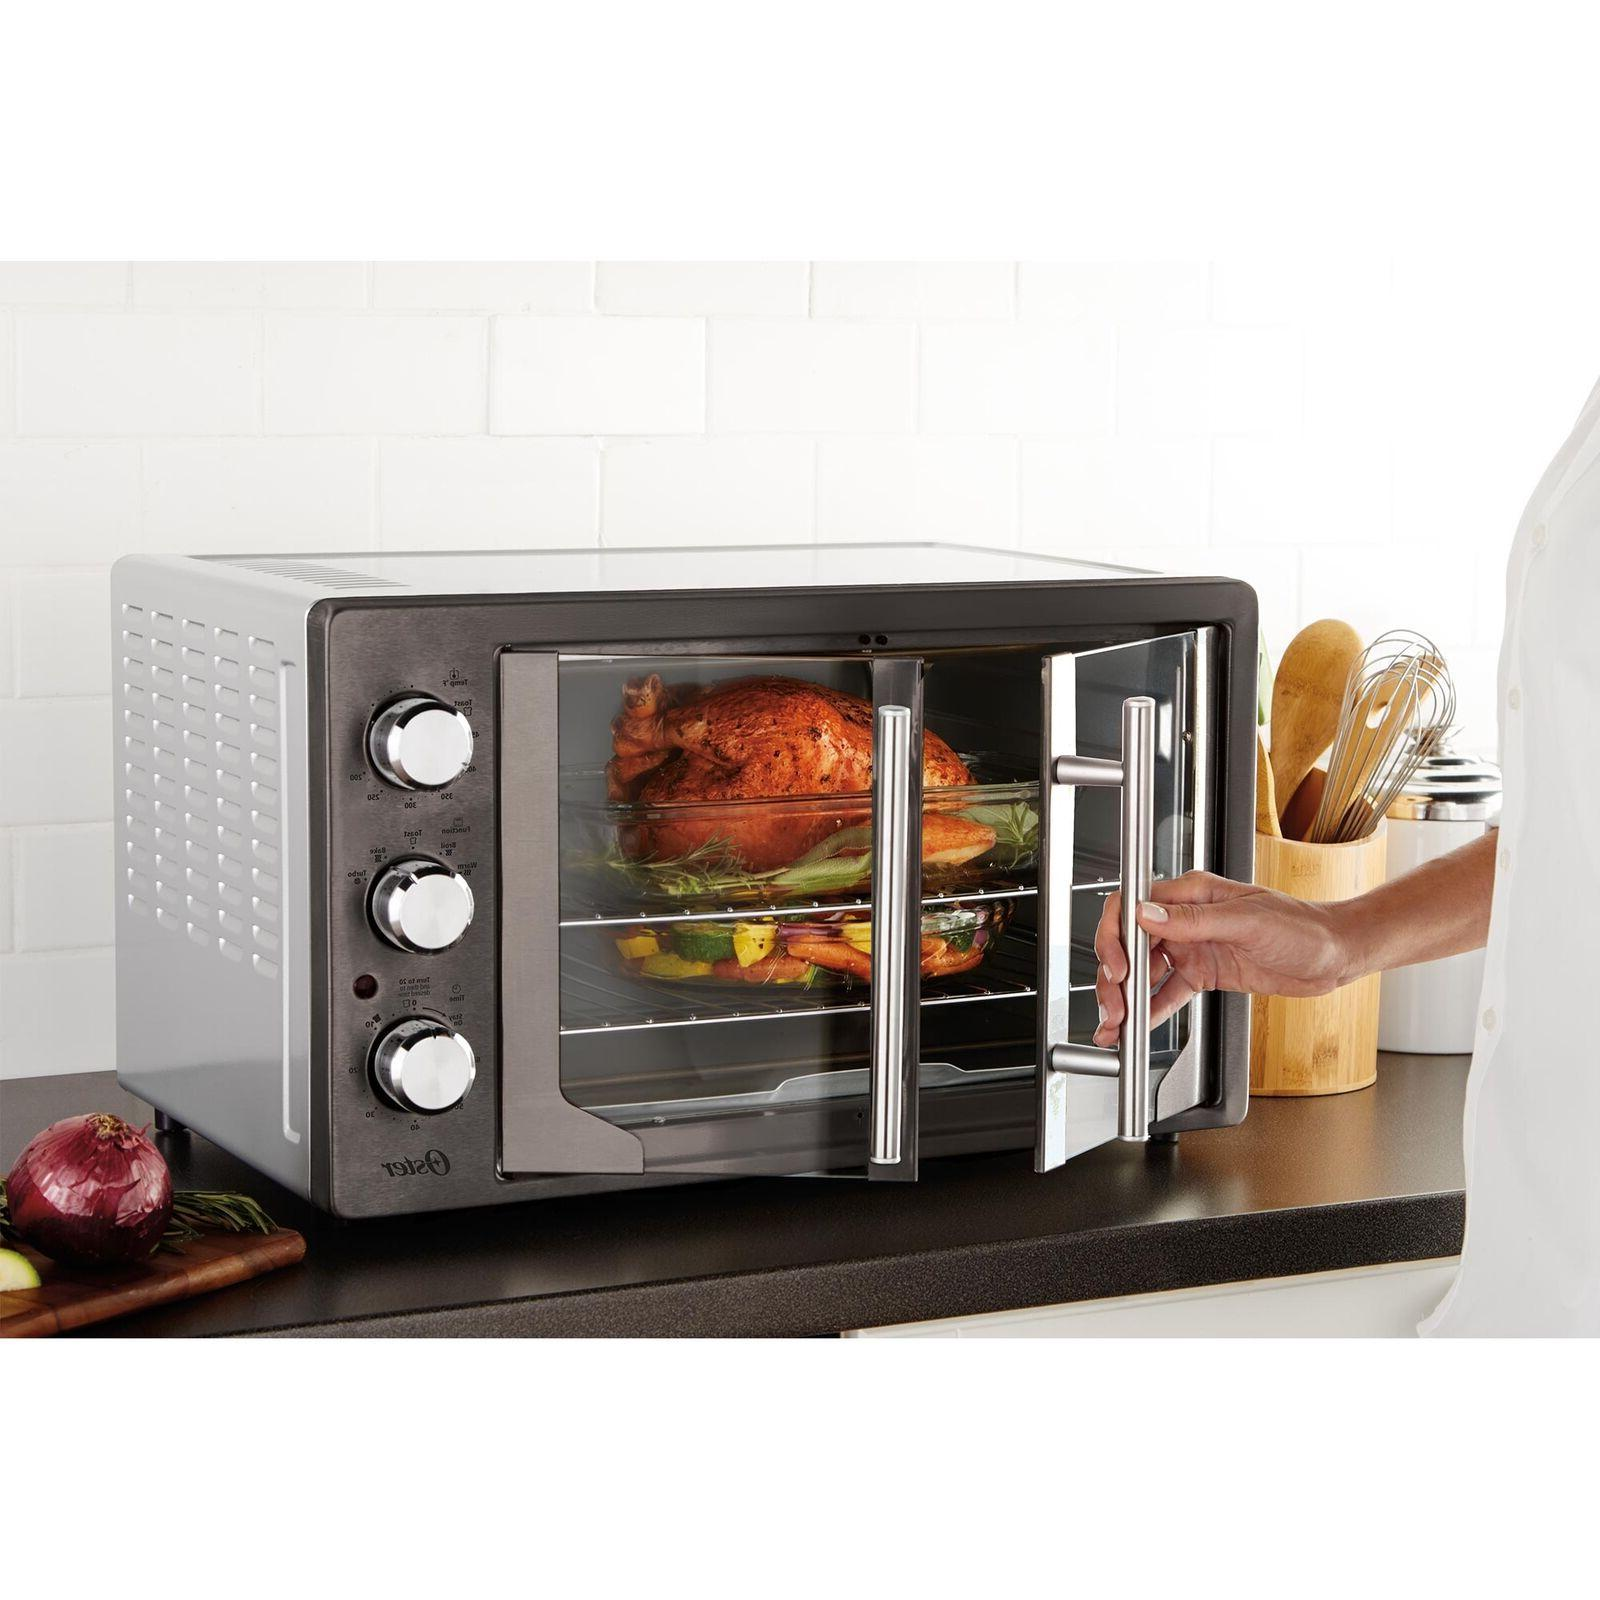 Oster Digital French Oven with Charcoal